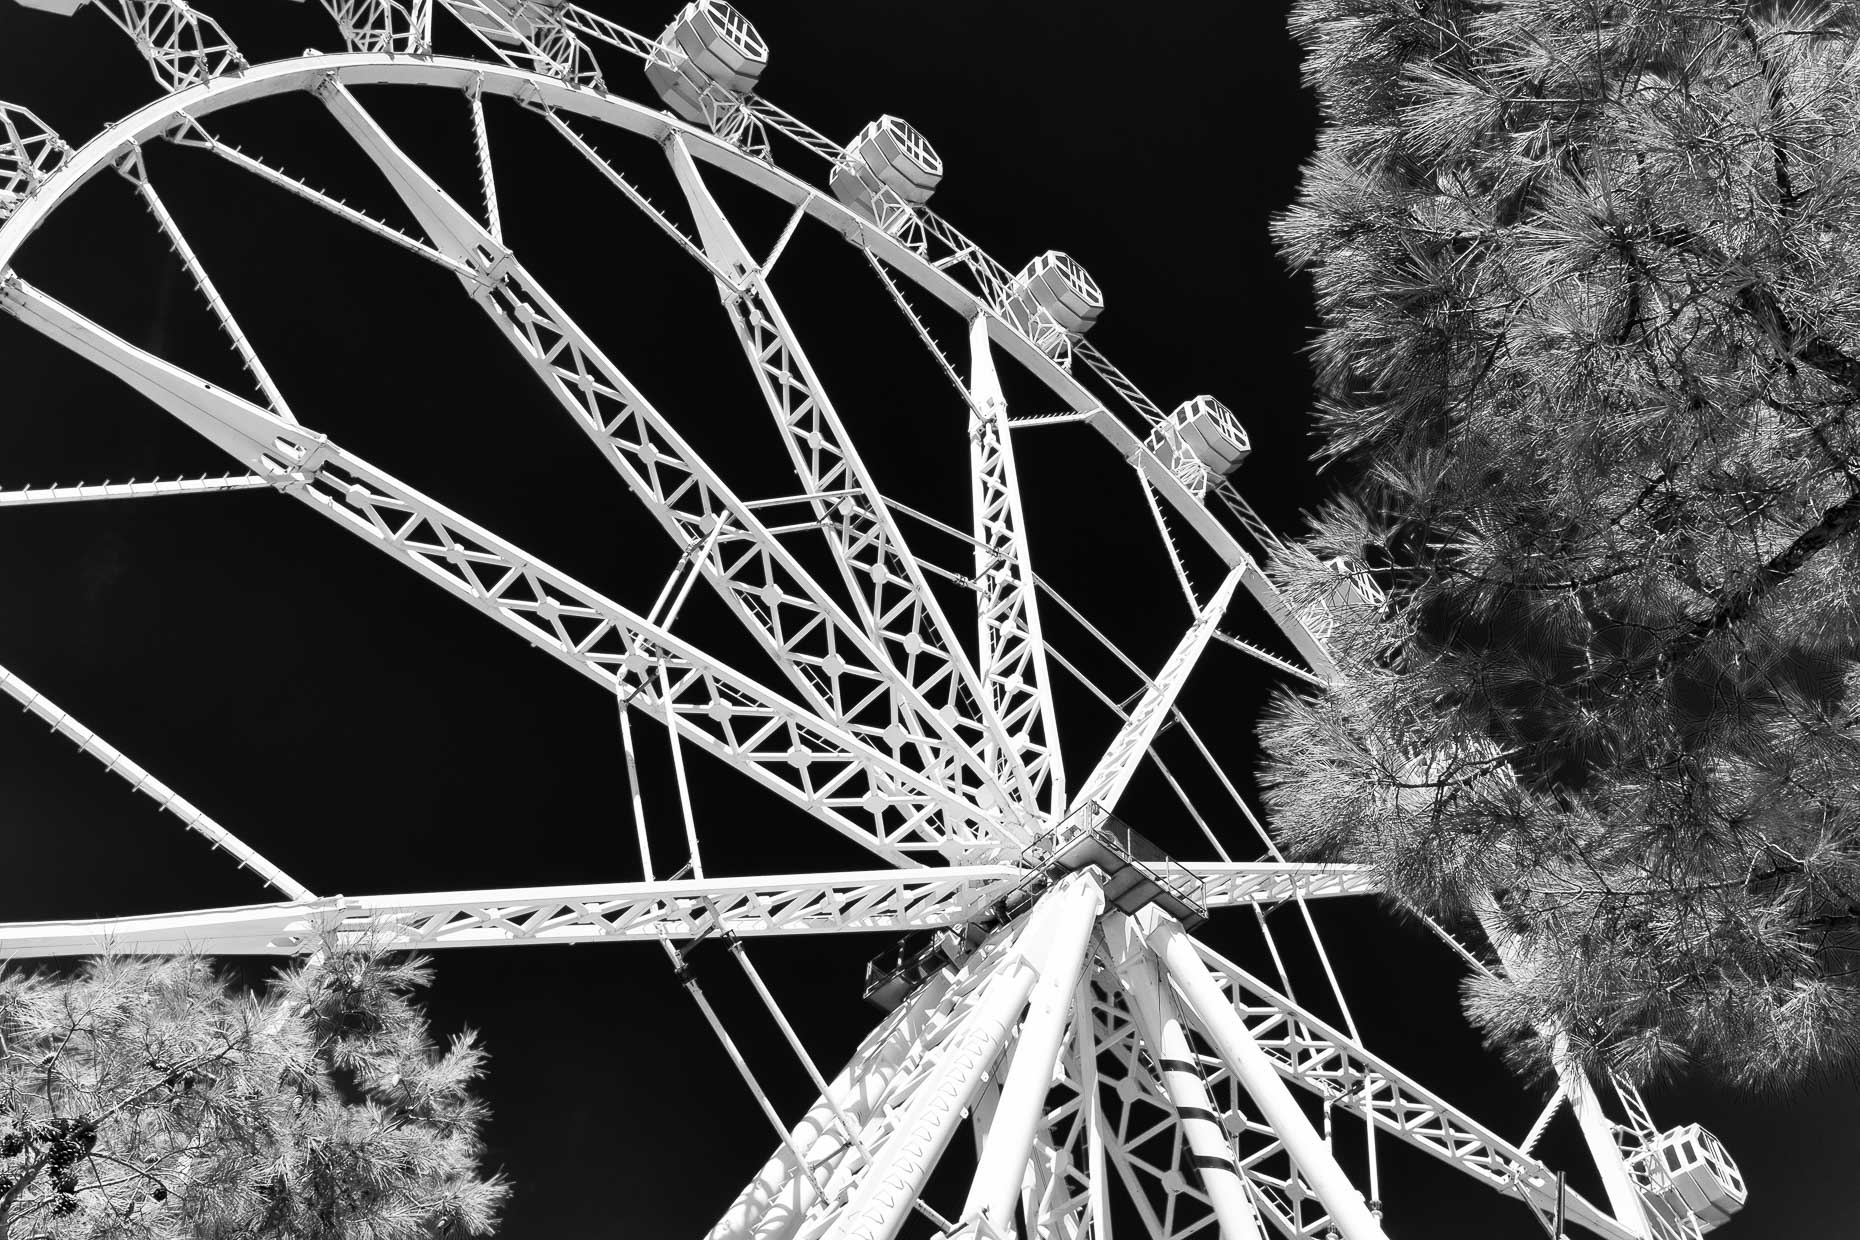 EFerris Wheel, Barcelona, Spain